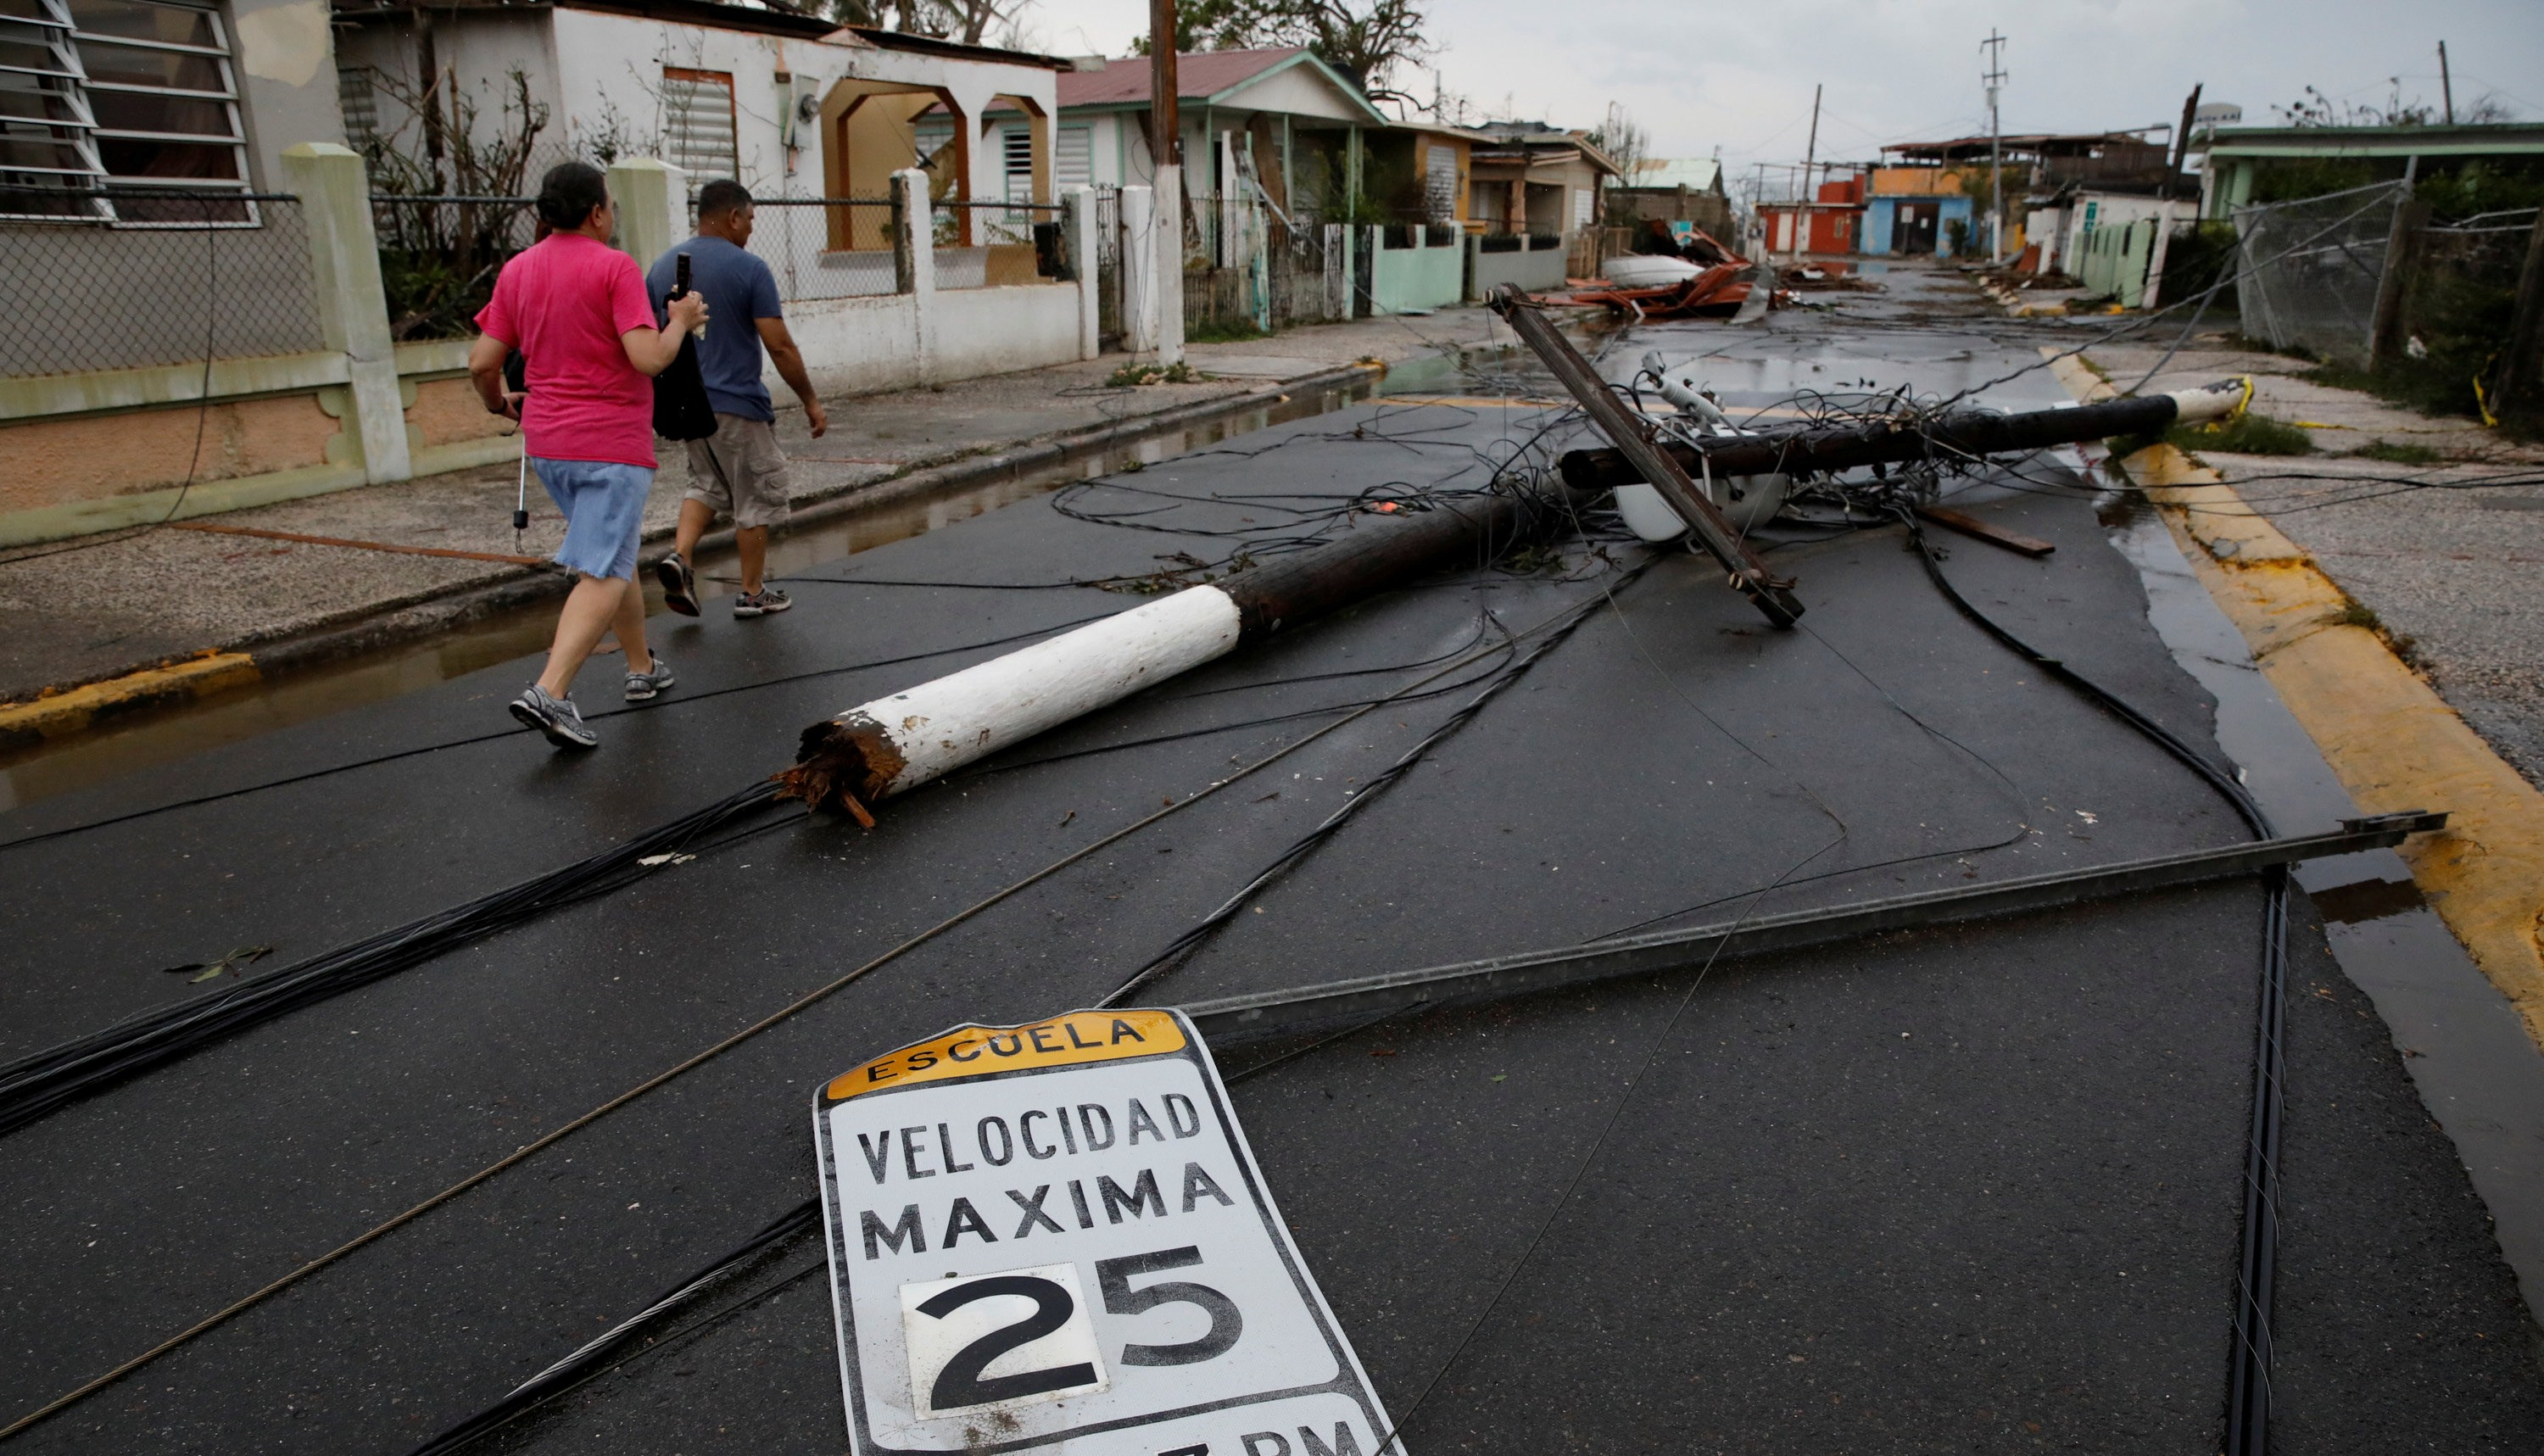 Photo: People walk next to fallen electric poles and traffic sings after the area was hit by Hurricane Maria in Salinas, Puerto Rico, September 21, 2017. REUTERS/Carlos Garcia Rawlins